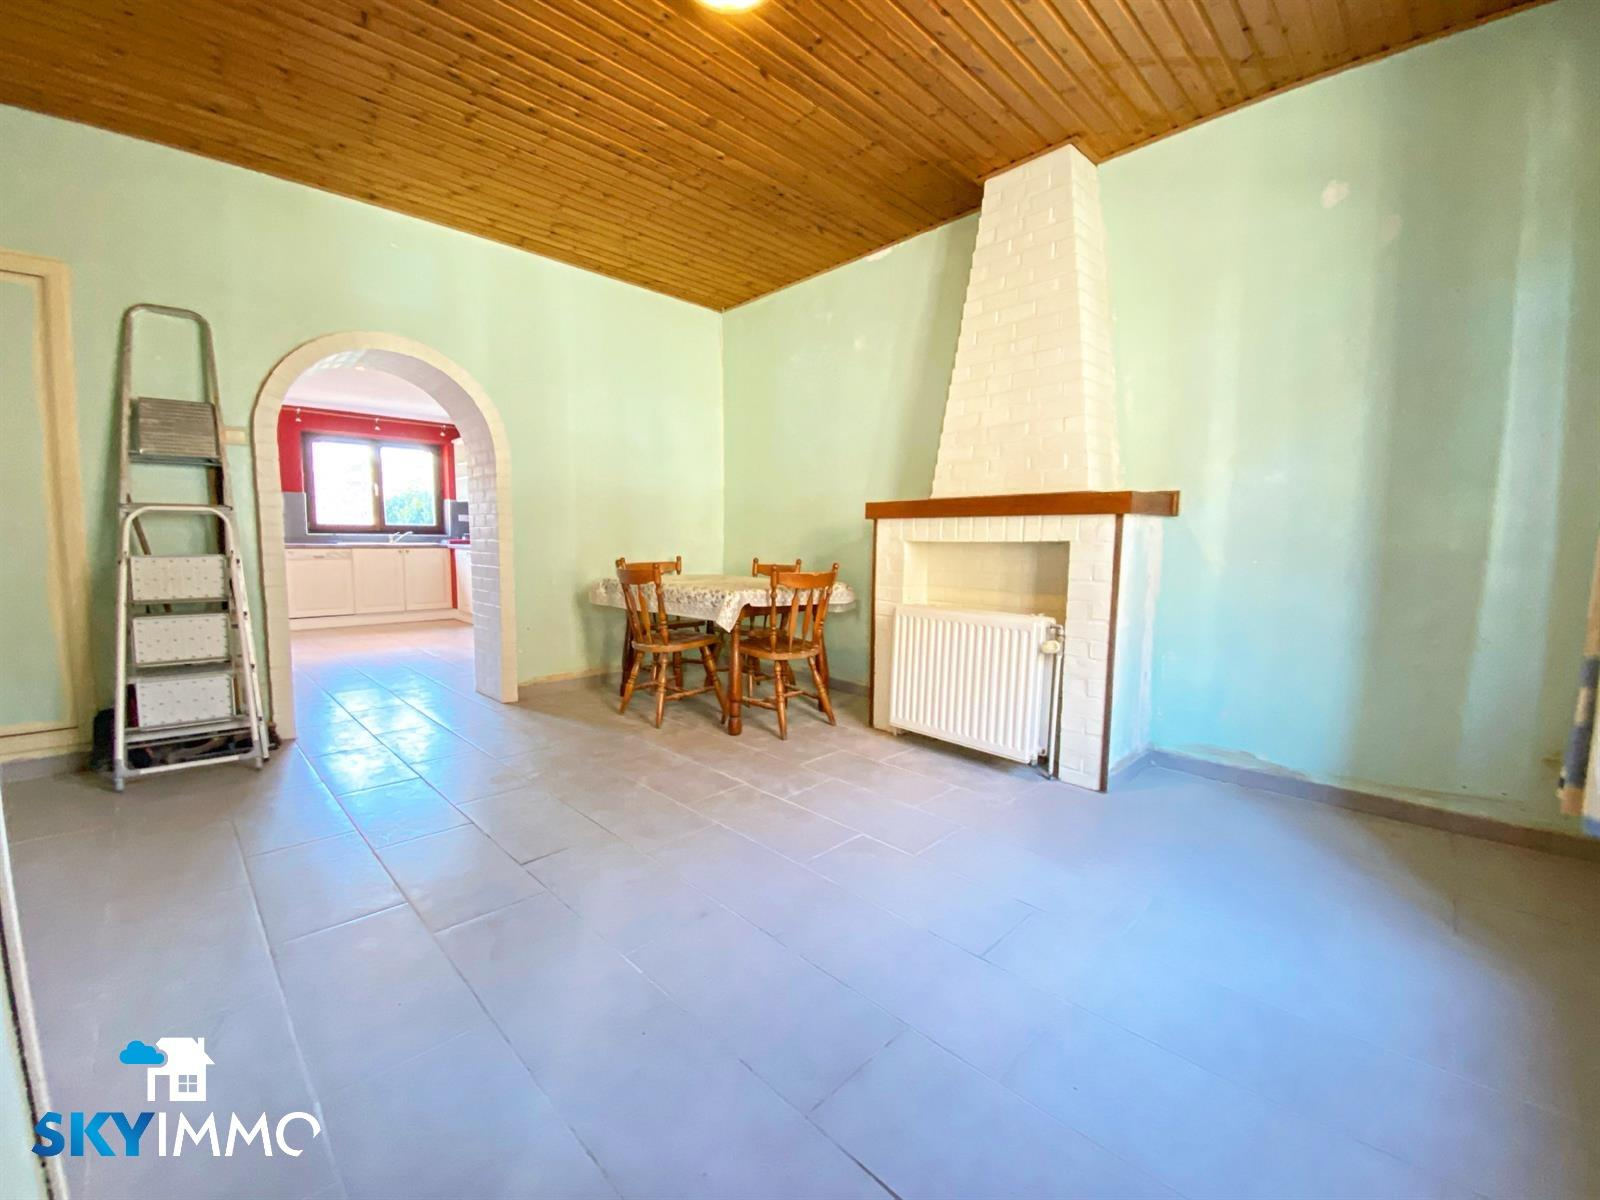 House - Flemalle - #4302890-3